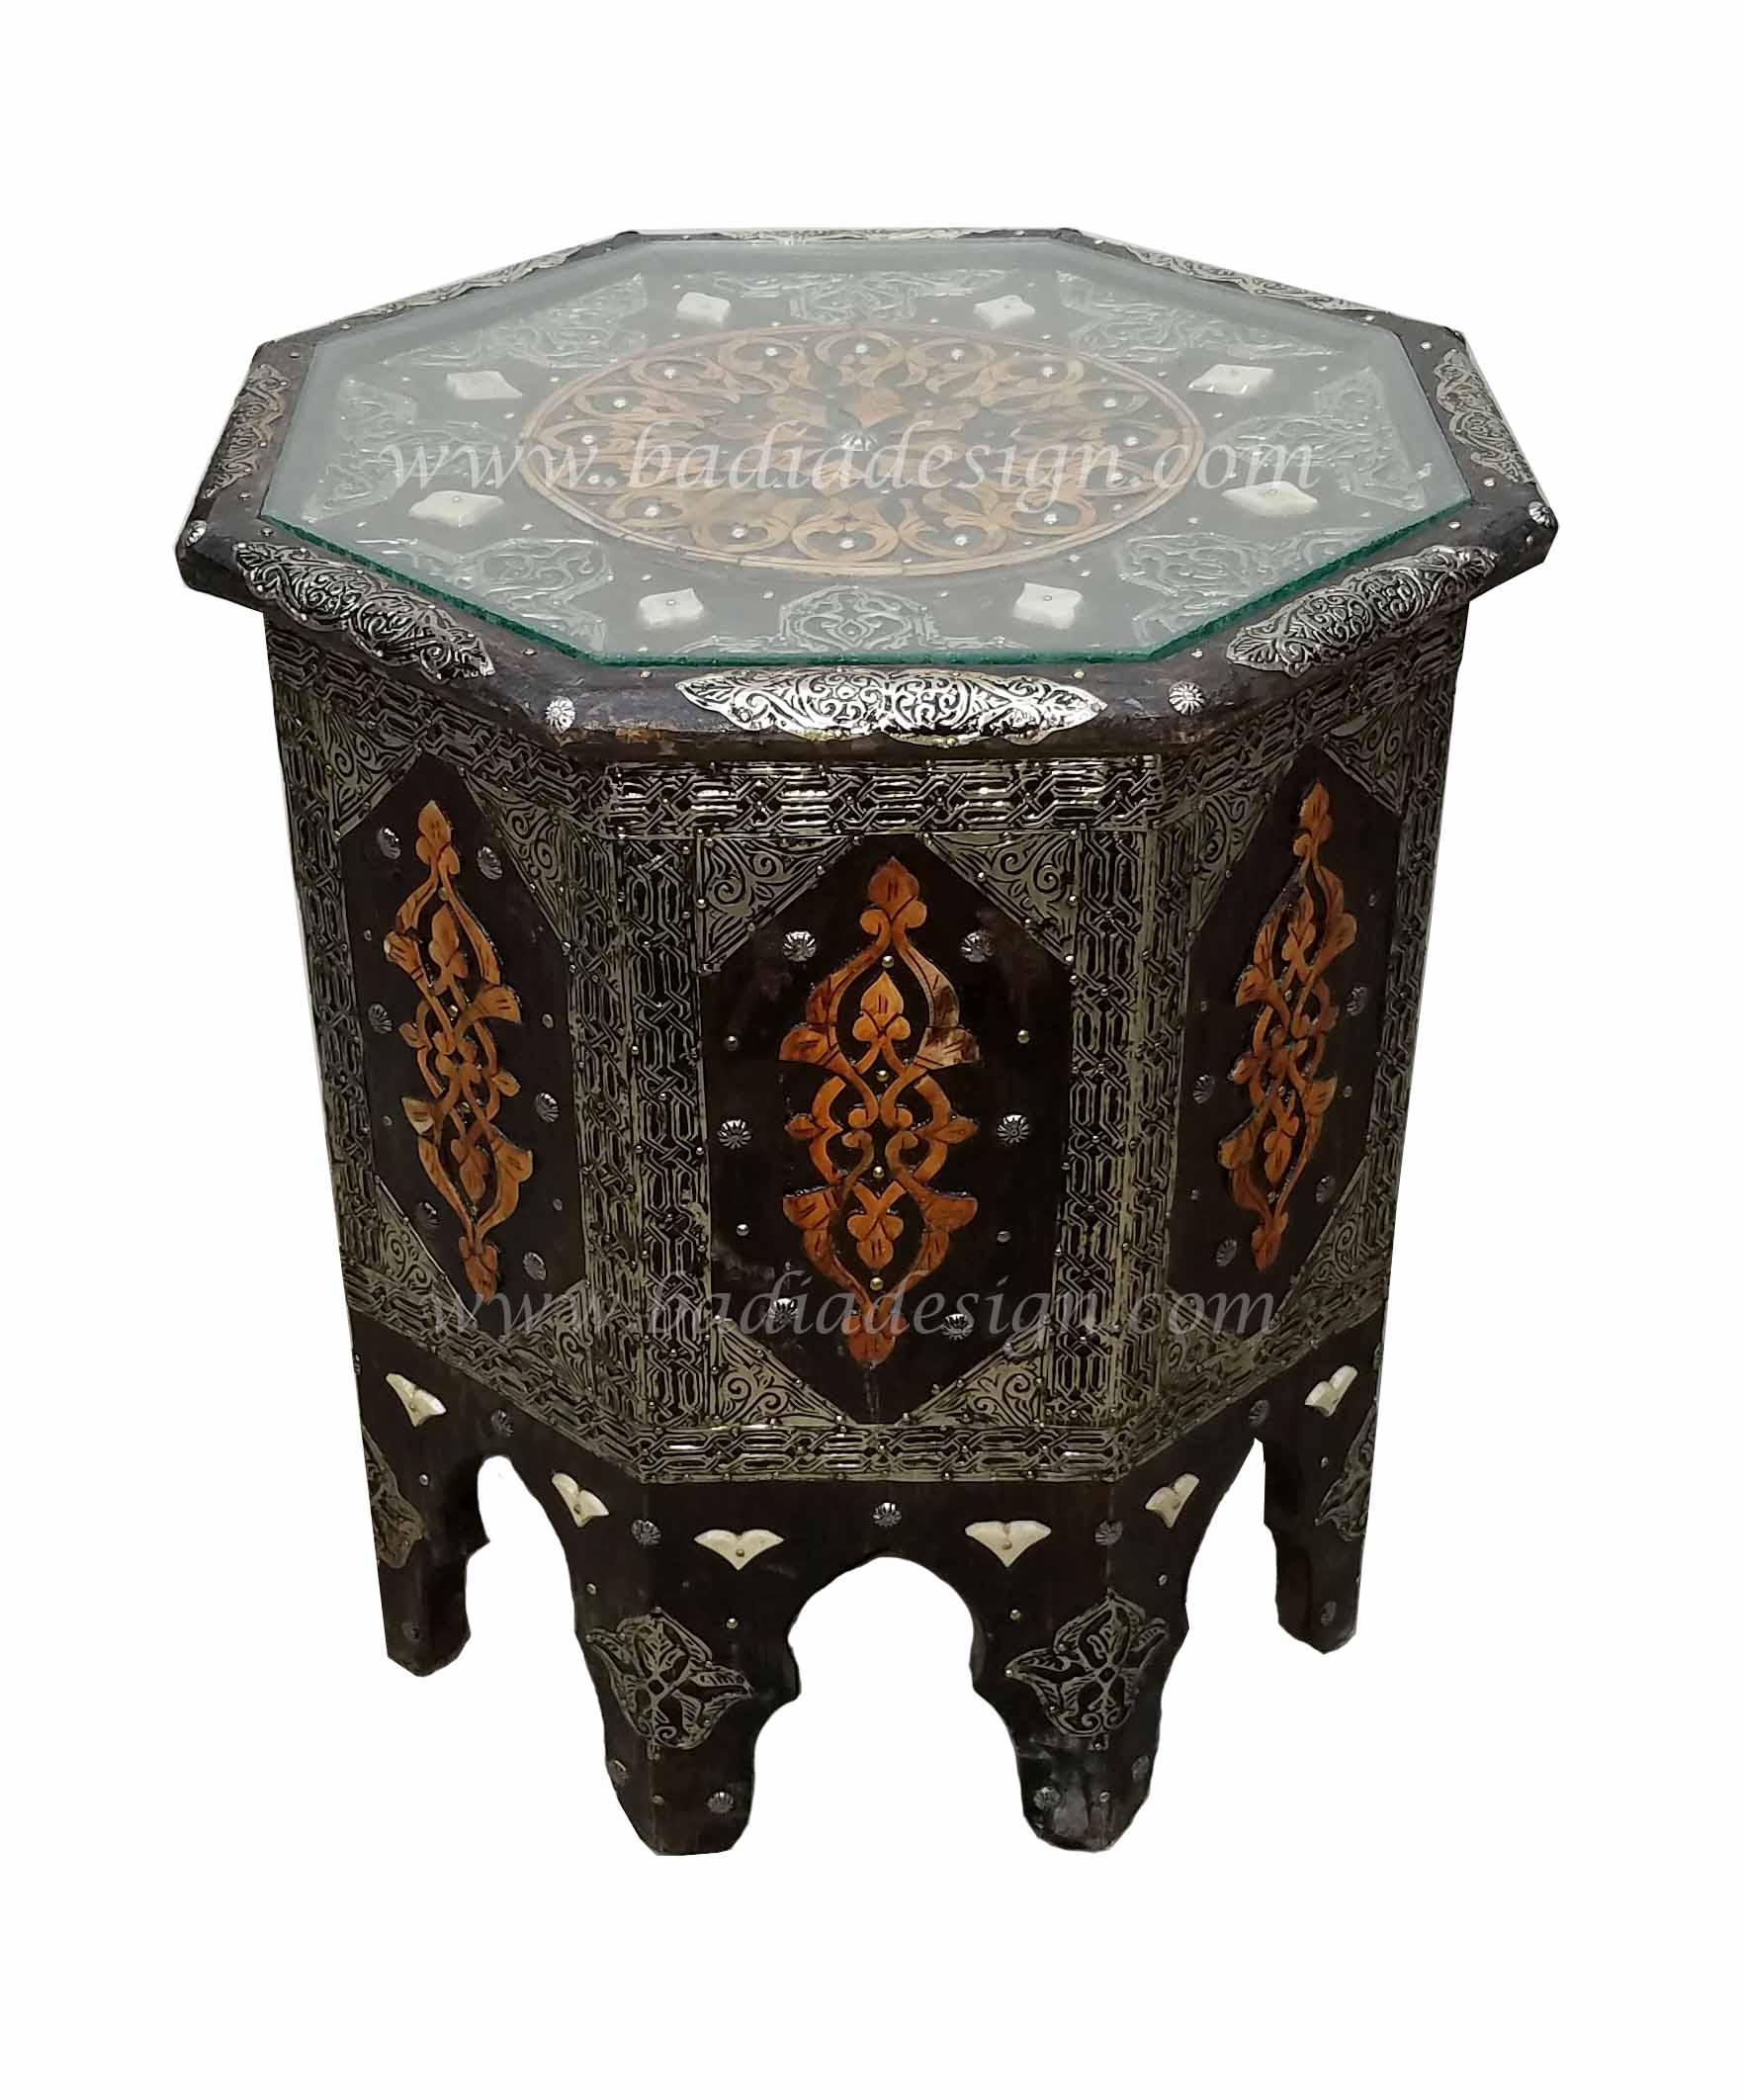 Moroccan Metal Table